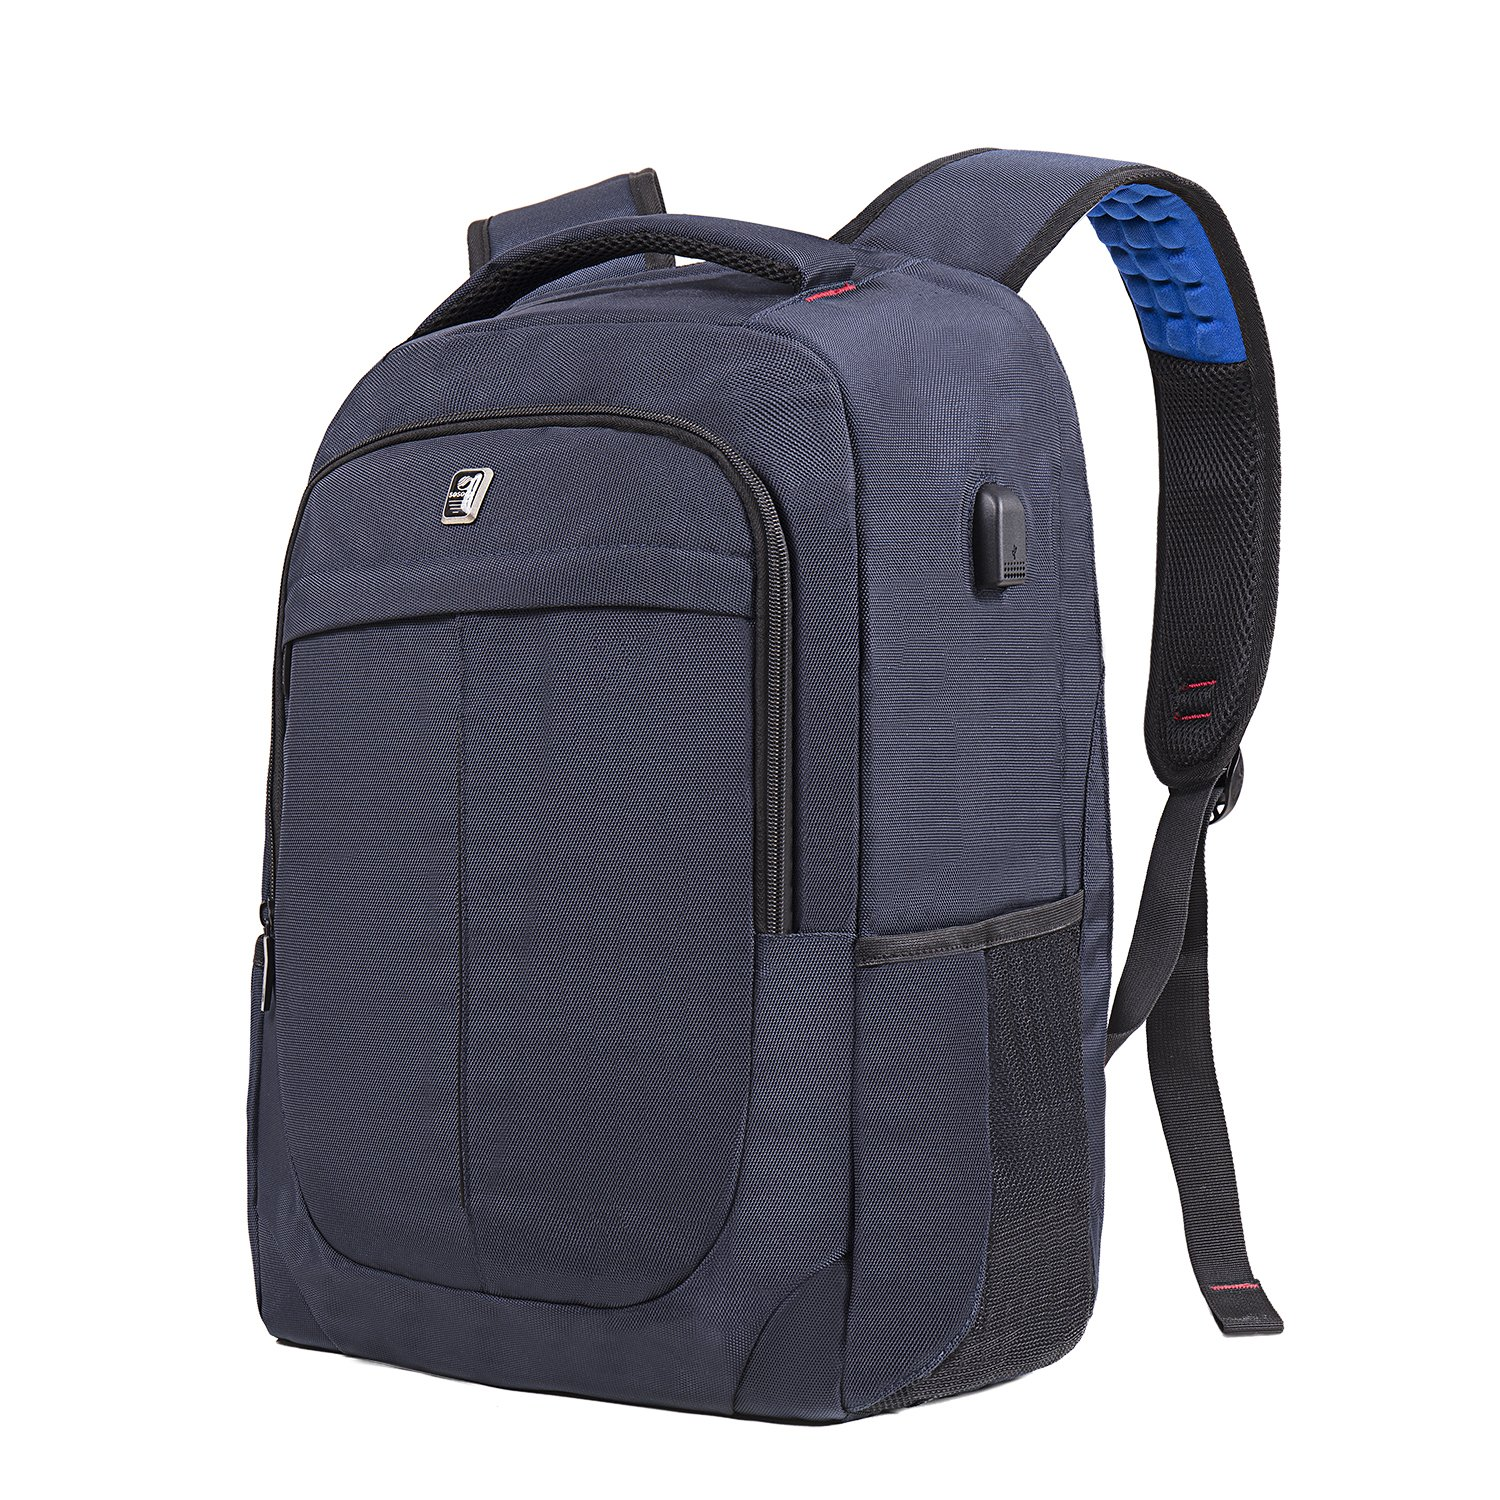 Mojo backpacks are a great way to attract attention and look stylish